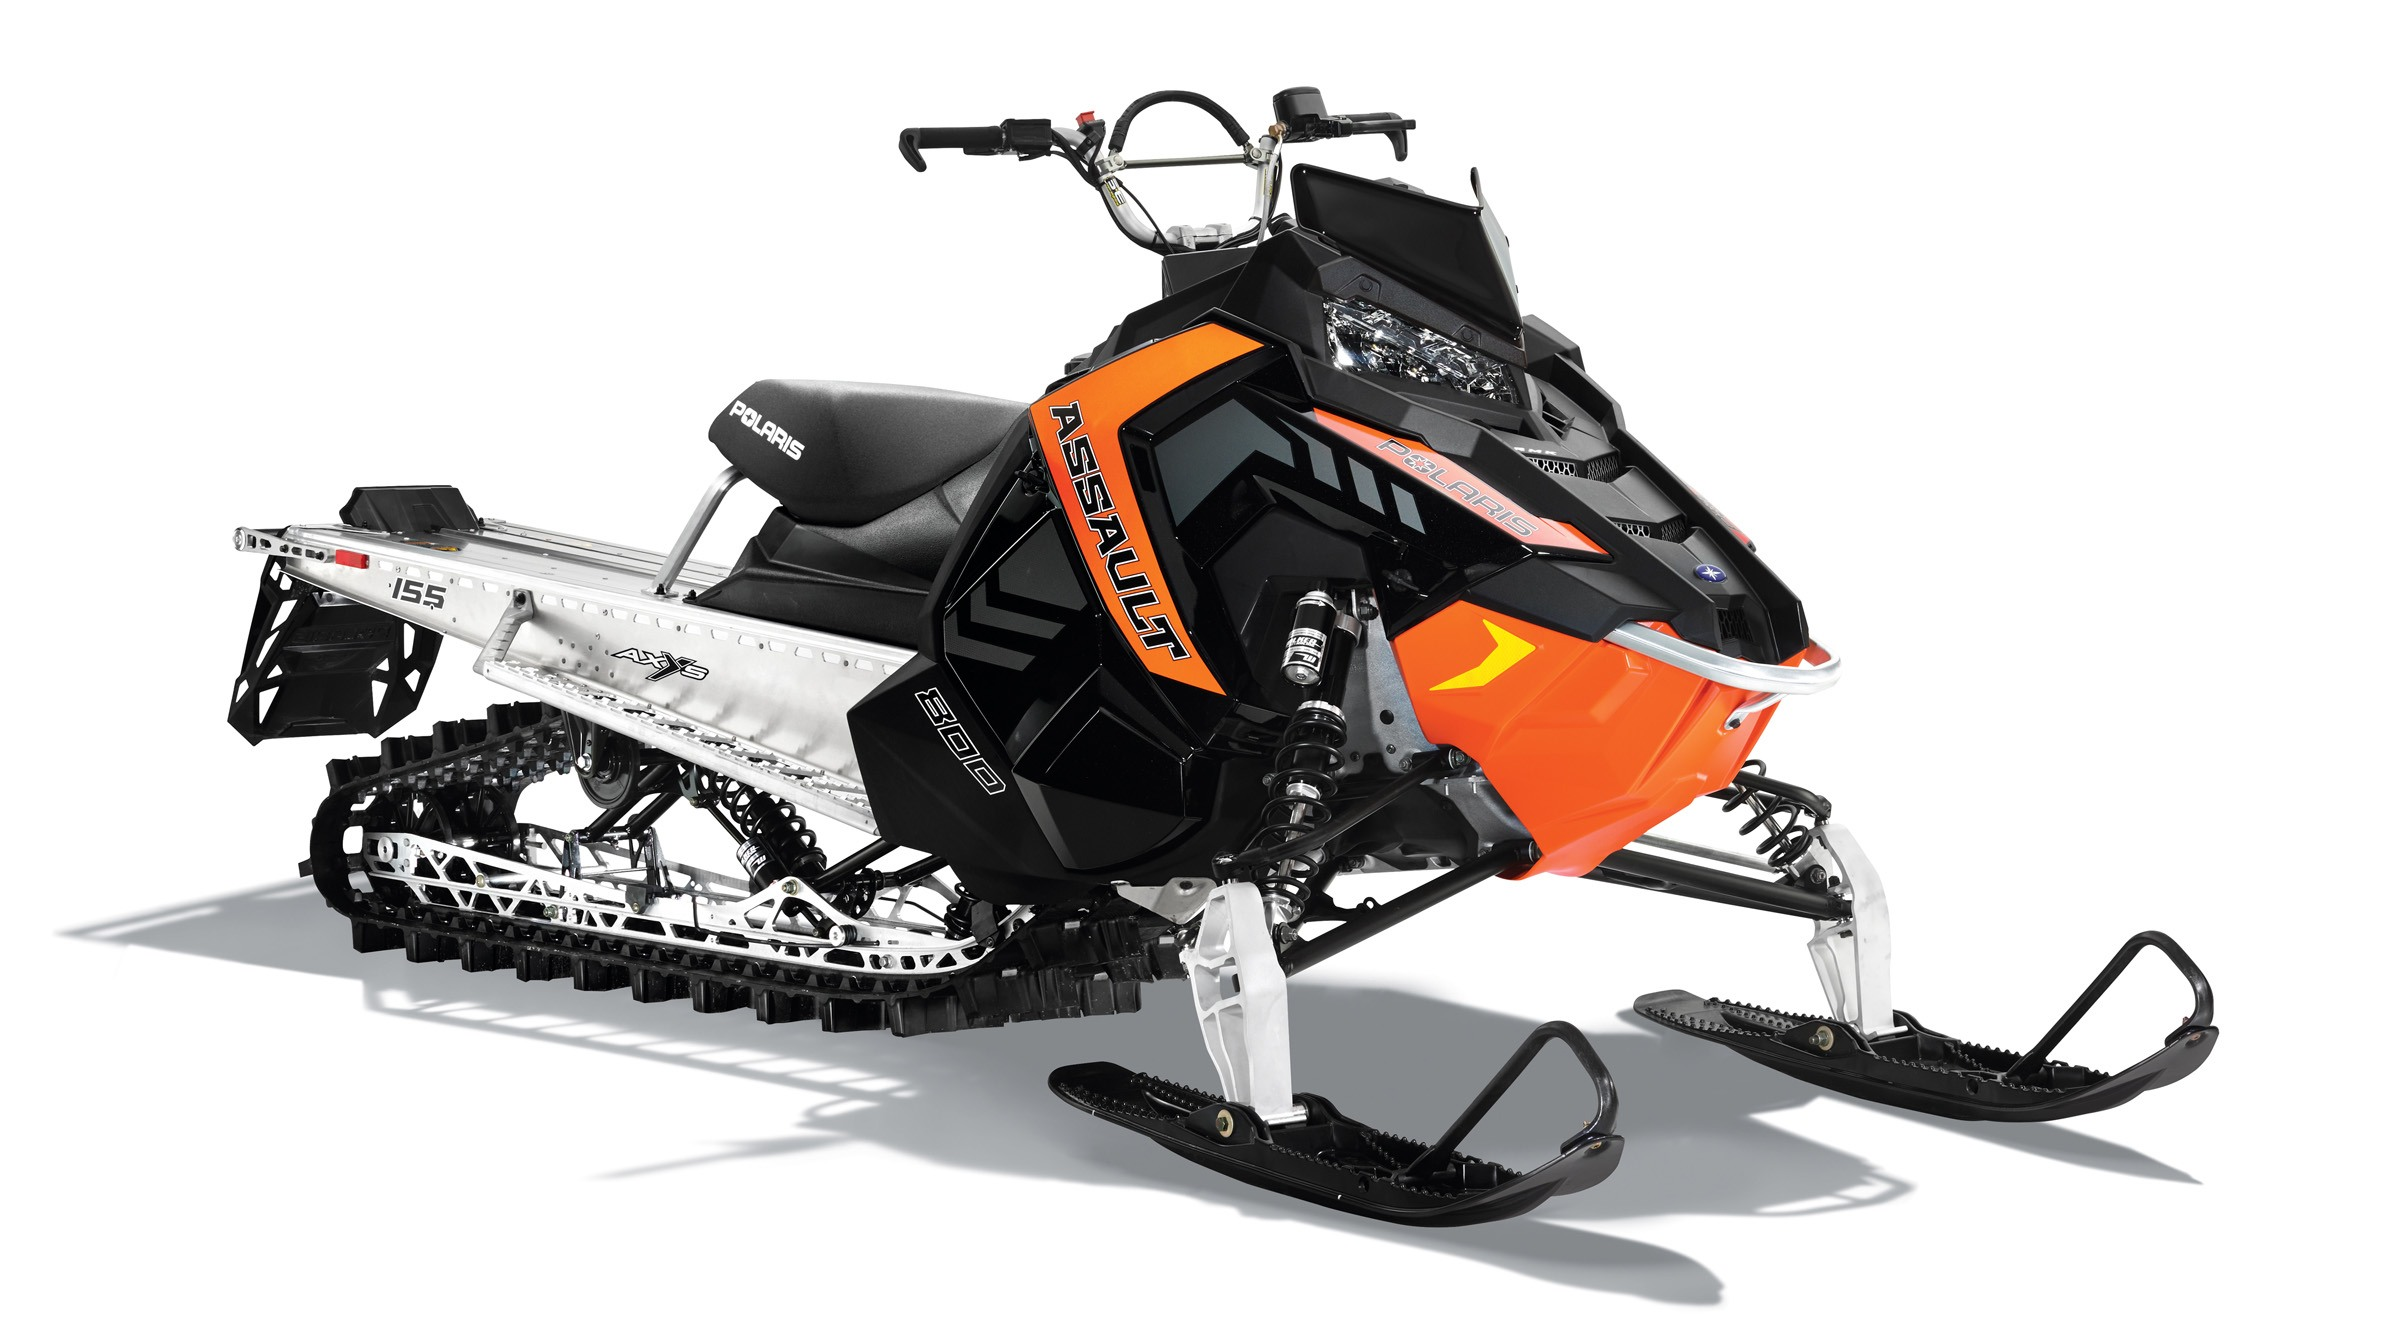 2016 Polaris 800 RMK Assault 155 Powder ES in El Campo, Texas